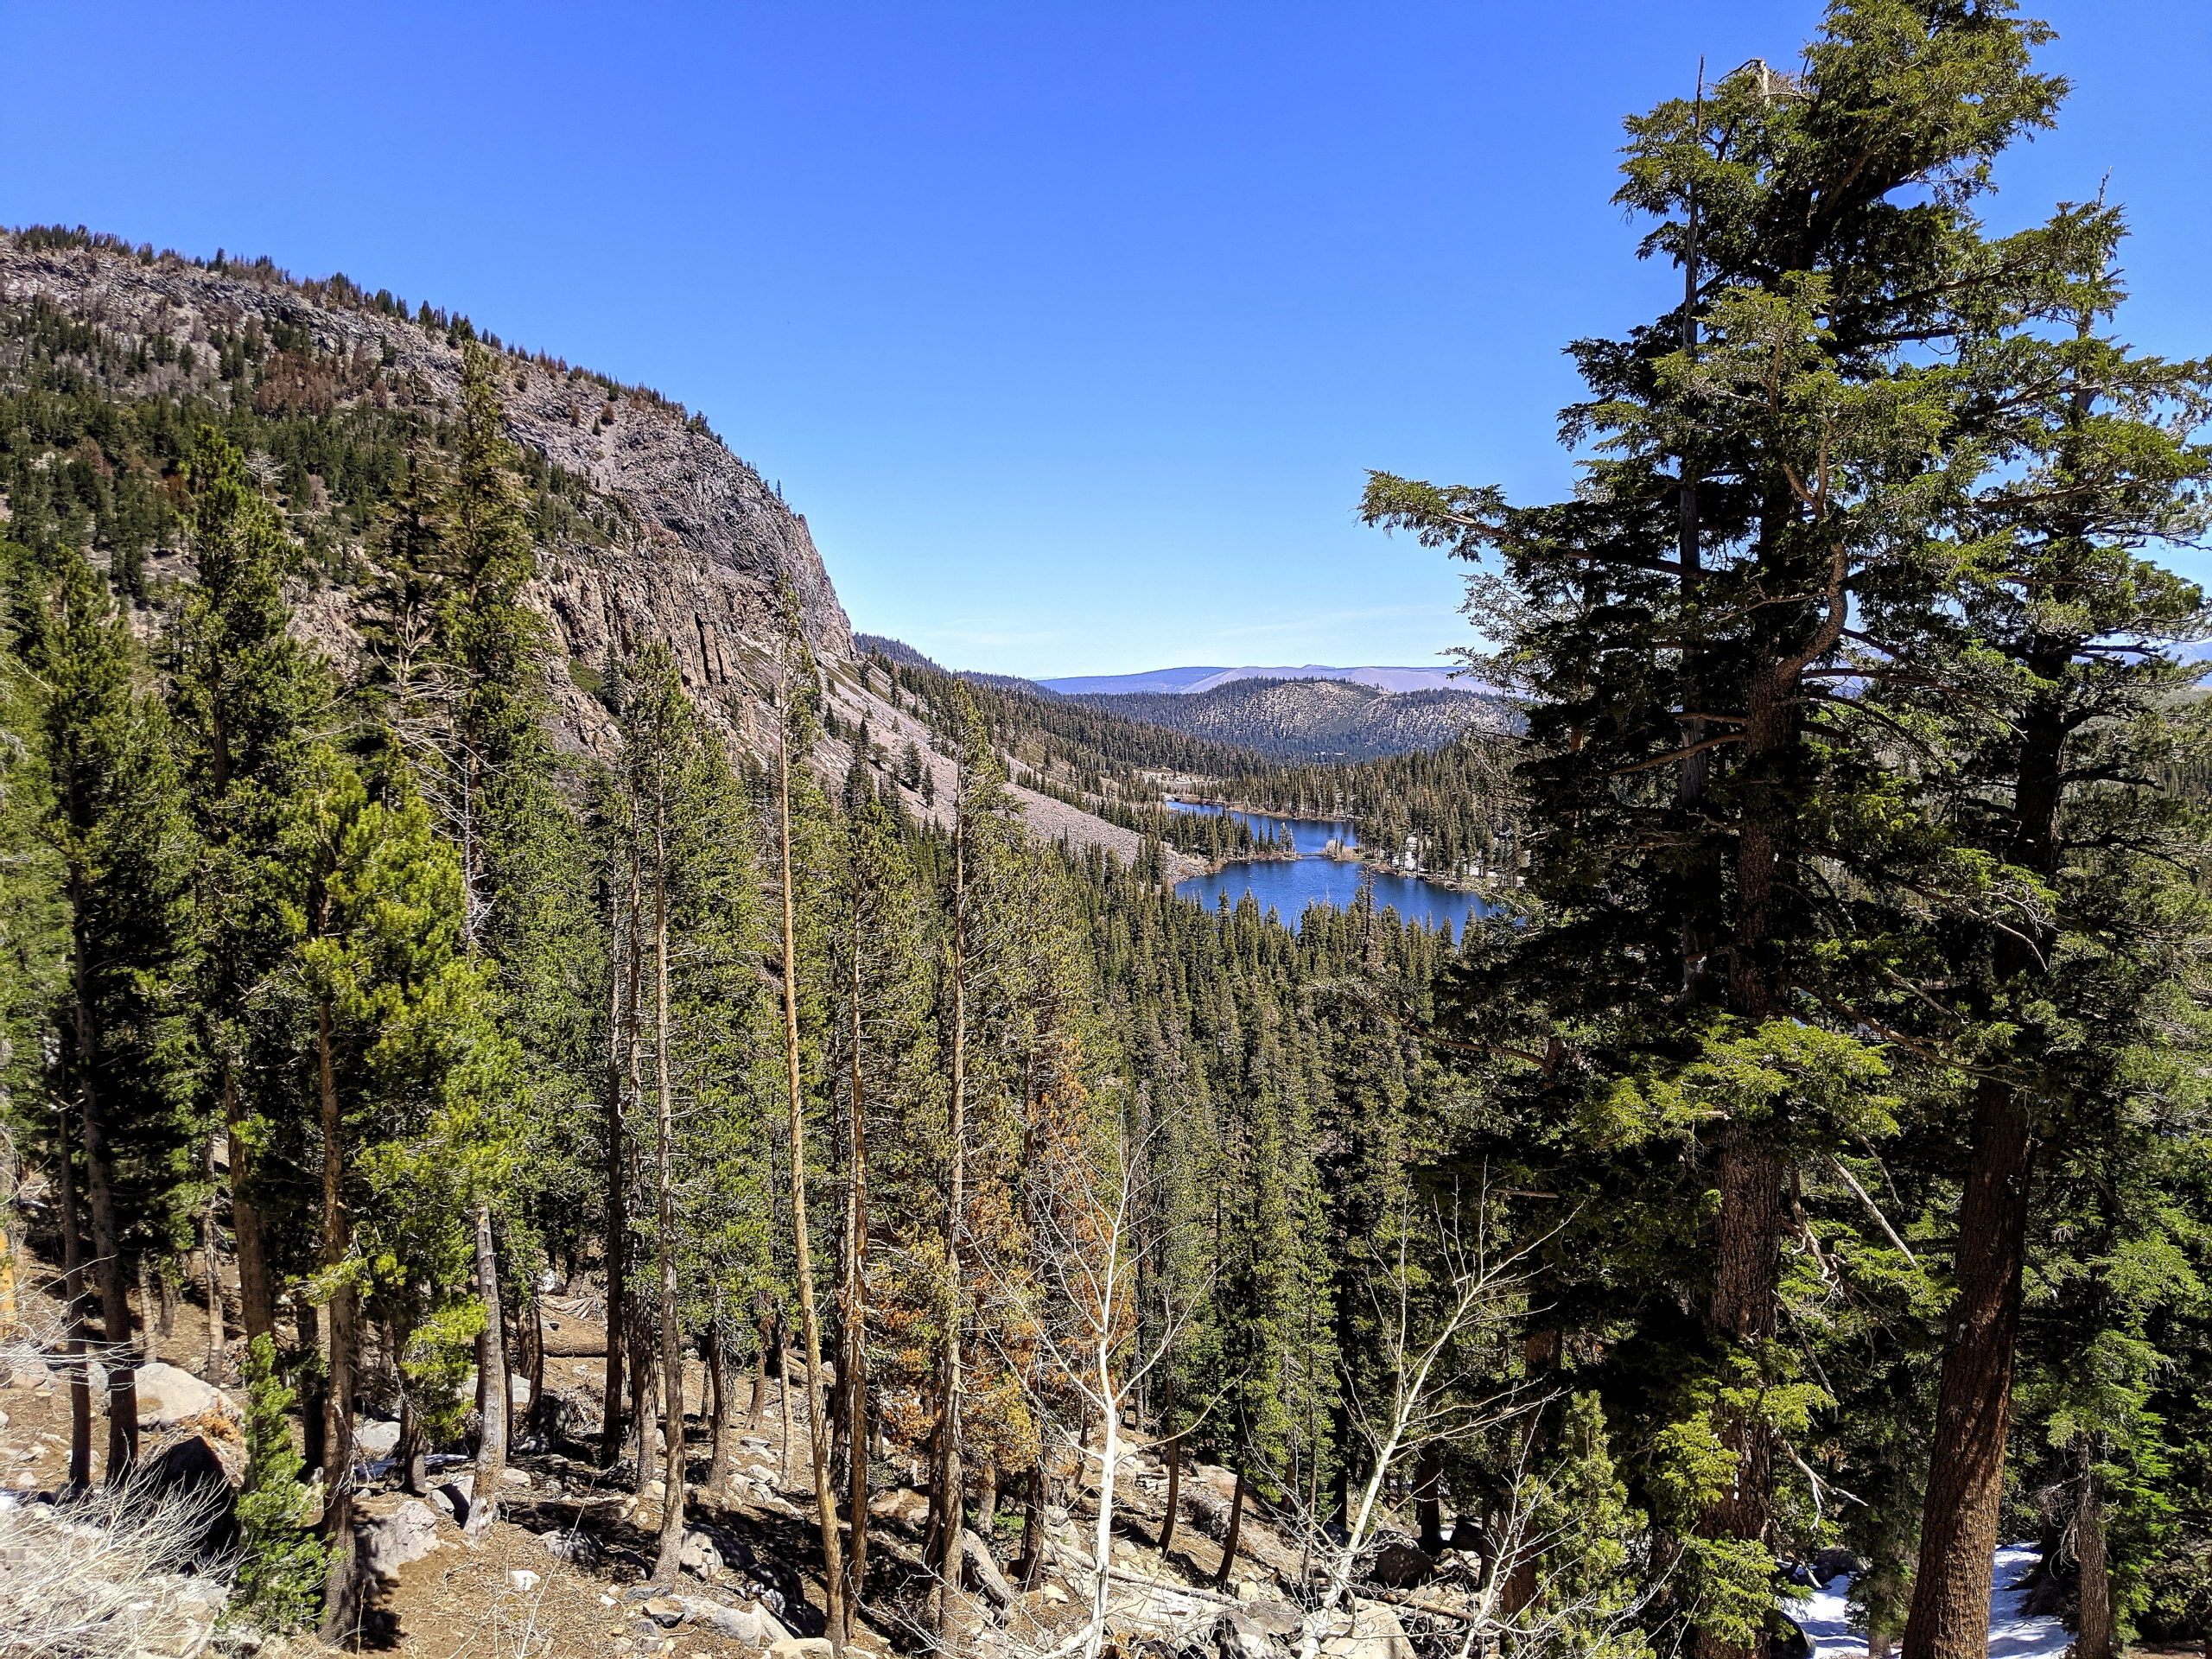 Mammoth Lakes Basin Scenic Point Looking at Twin Lakes